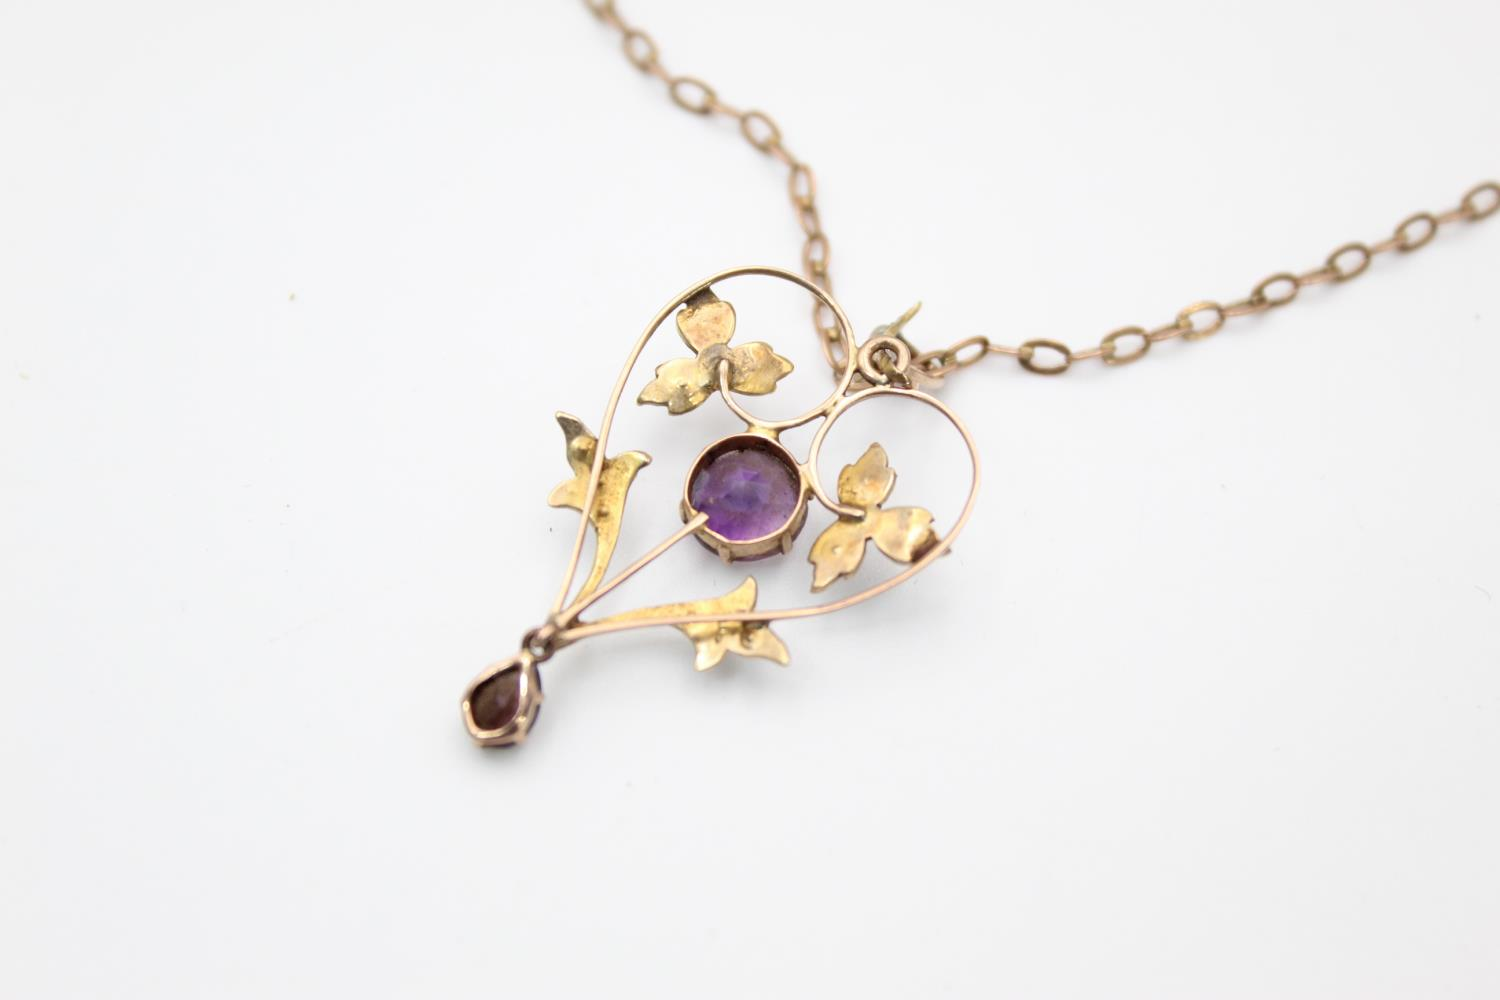 Antique 9ct Gold amethyst & seed pearl pendant necklace *one seed pearl missing 3.7g - Image 4 of 5